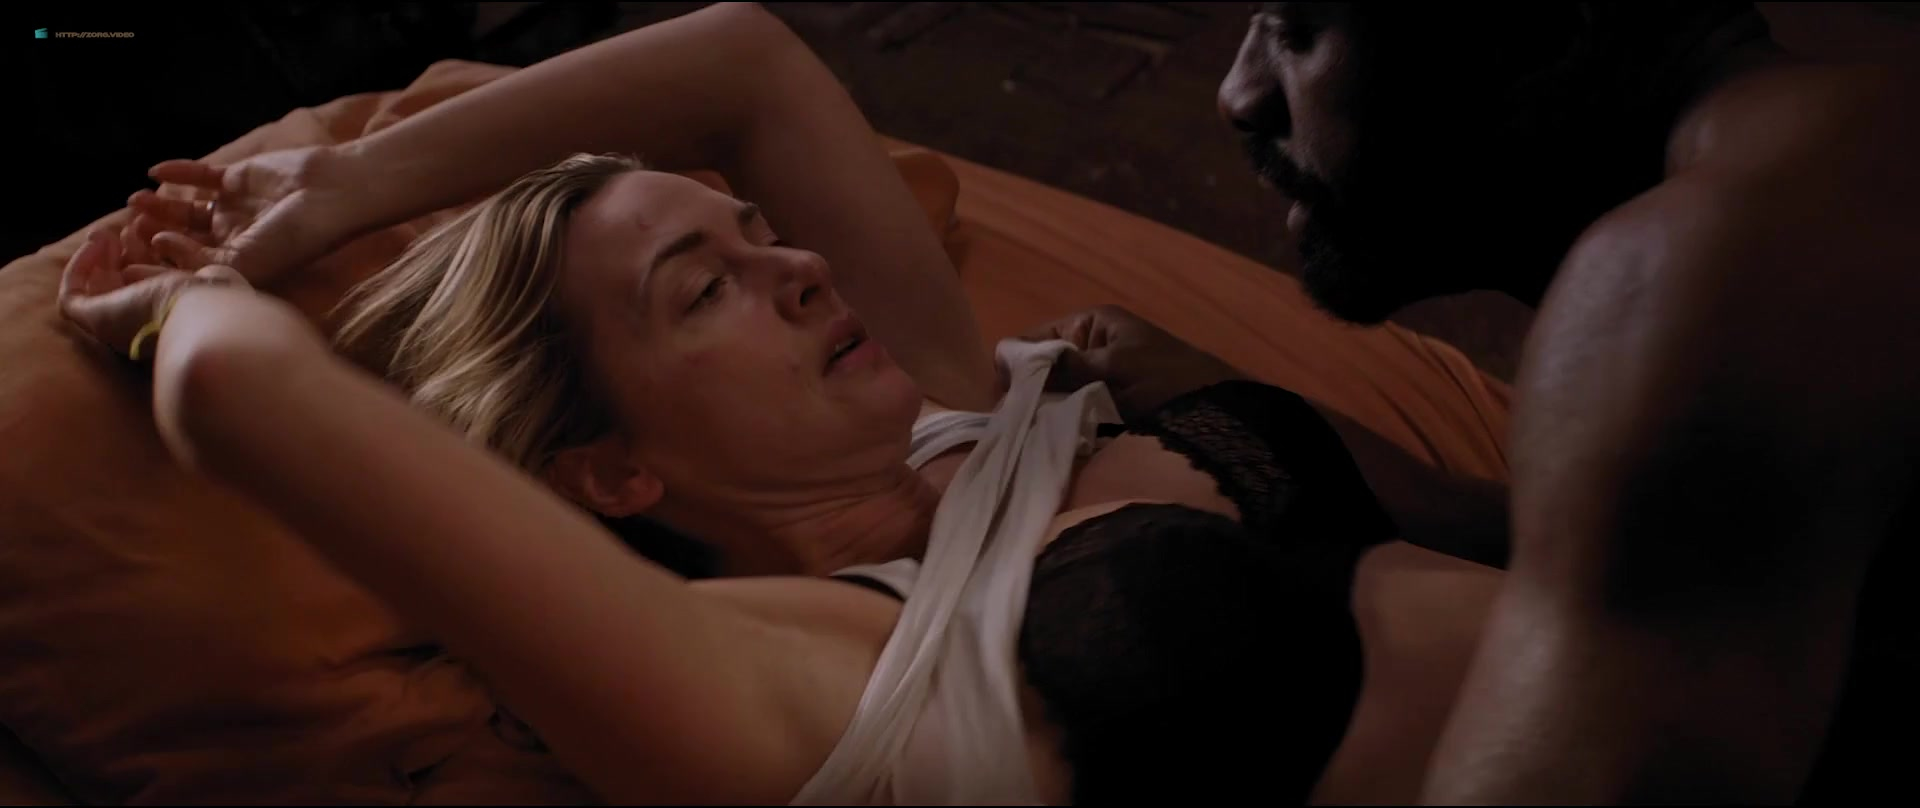 Breast of kate winslet-3136